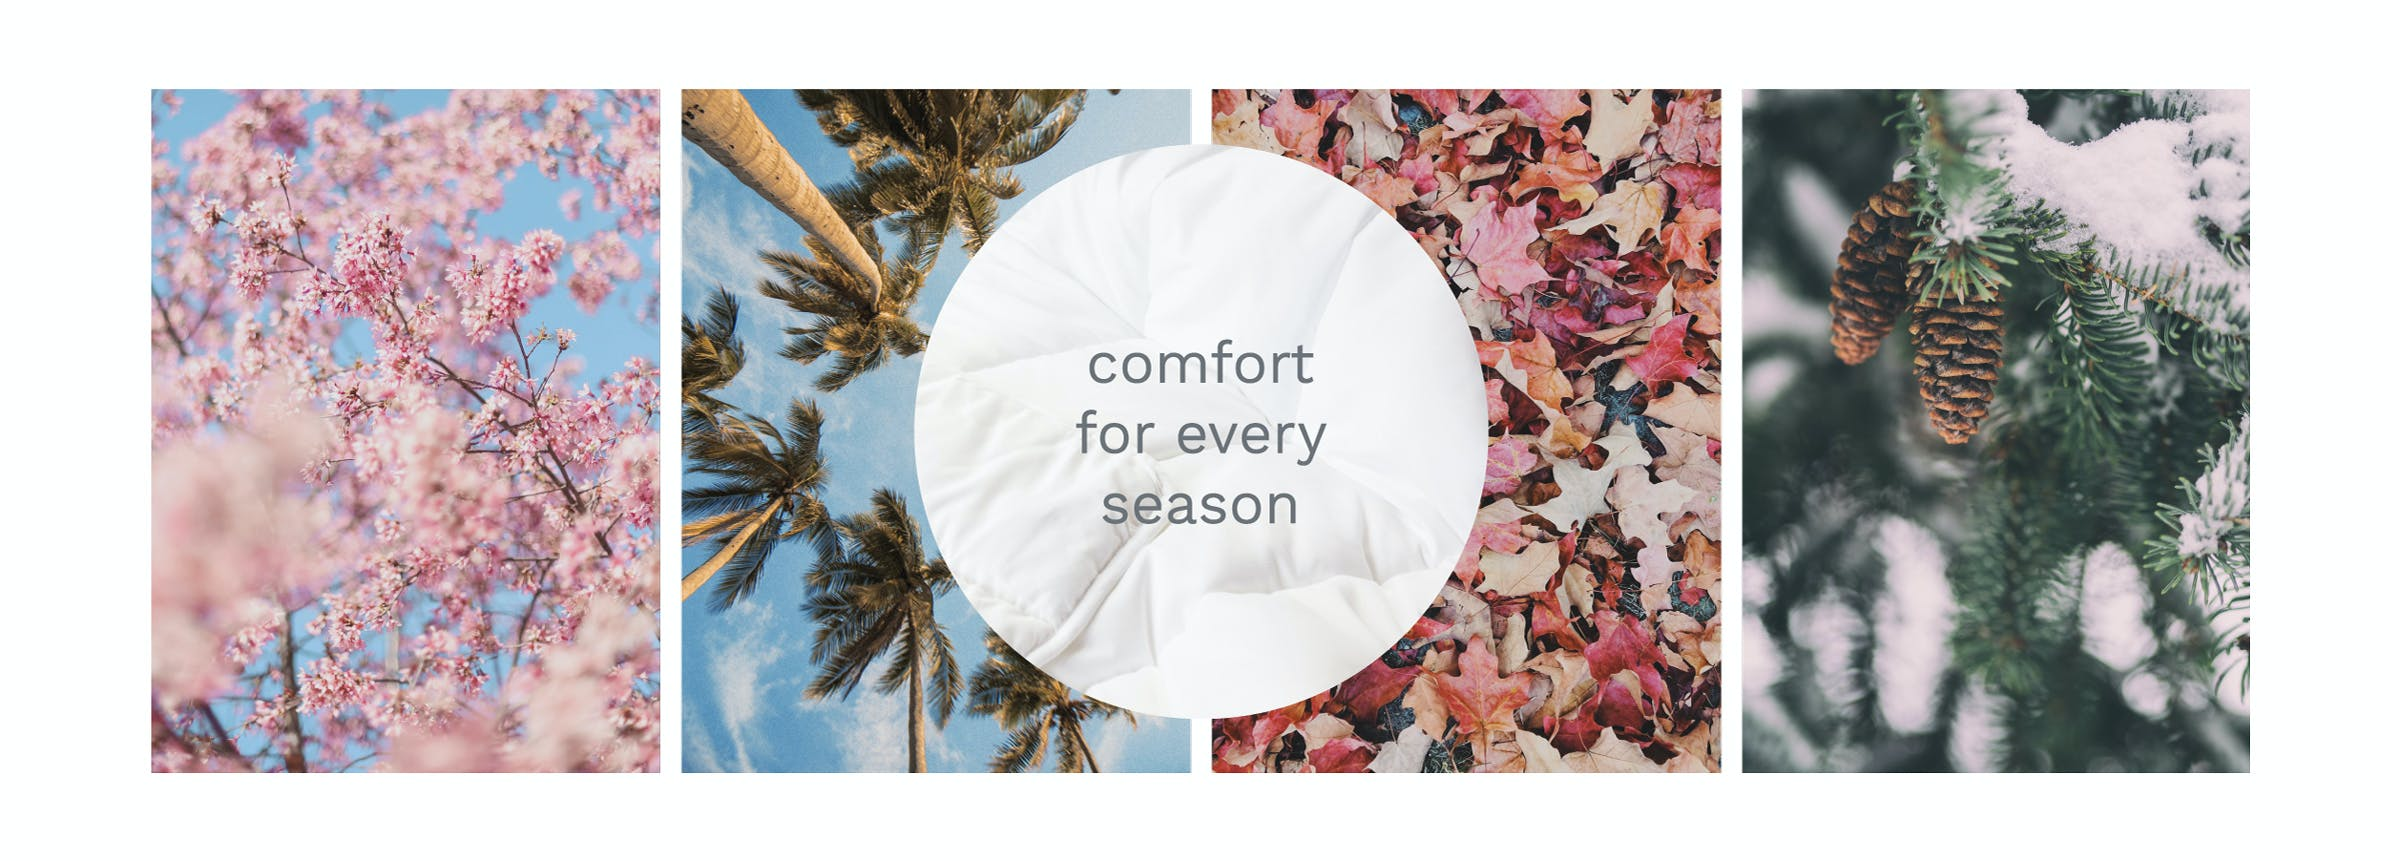 collage of trees flowers pinecones content a comforter for all seasons